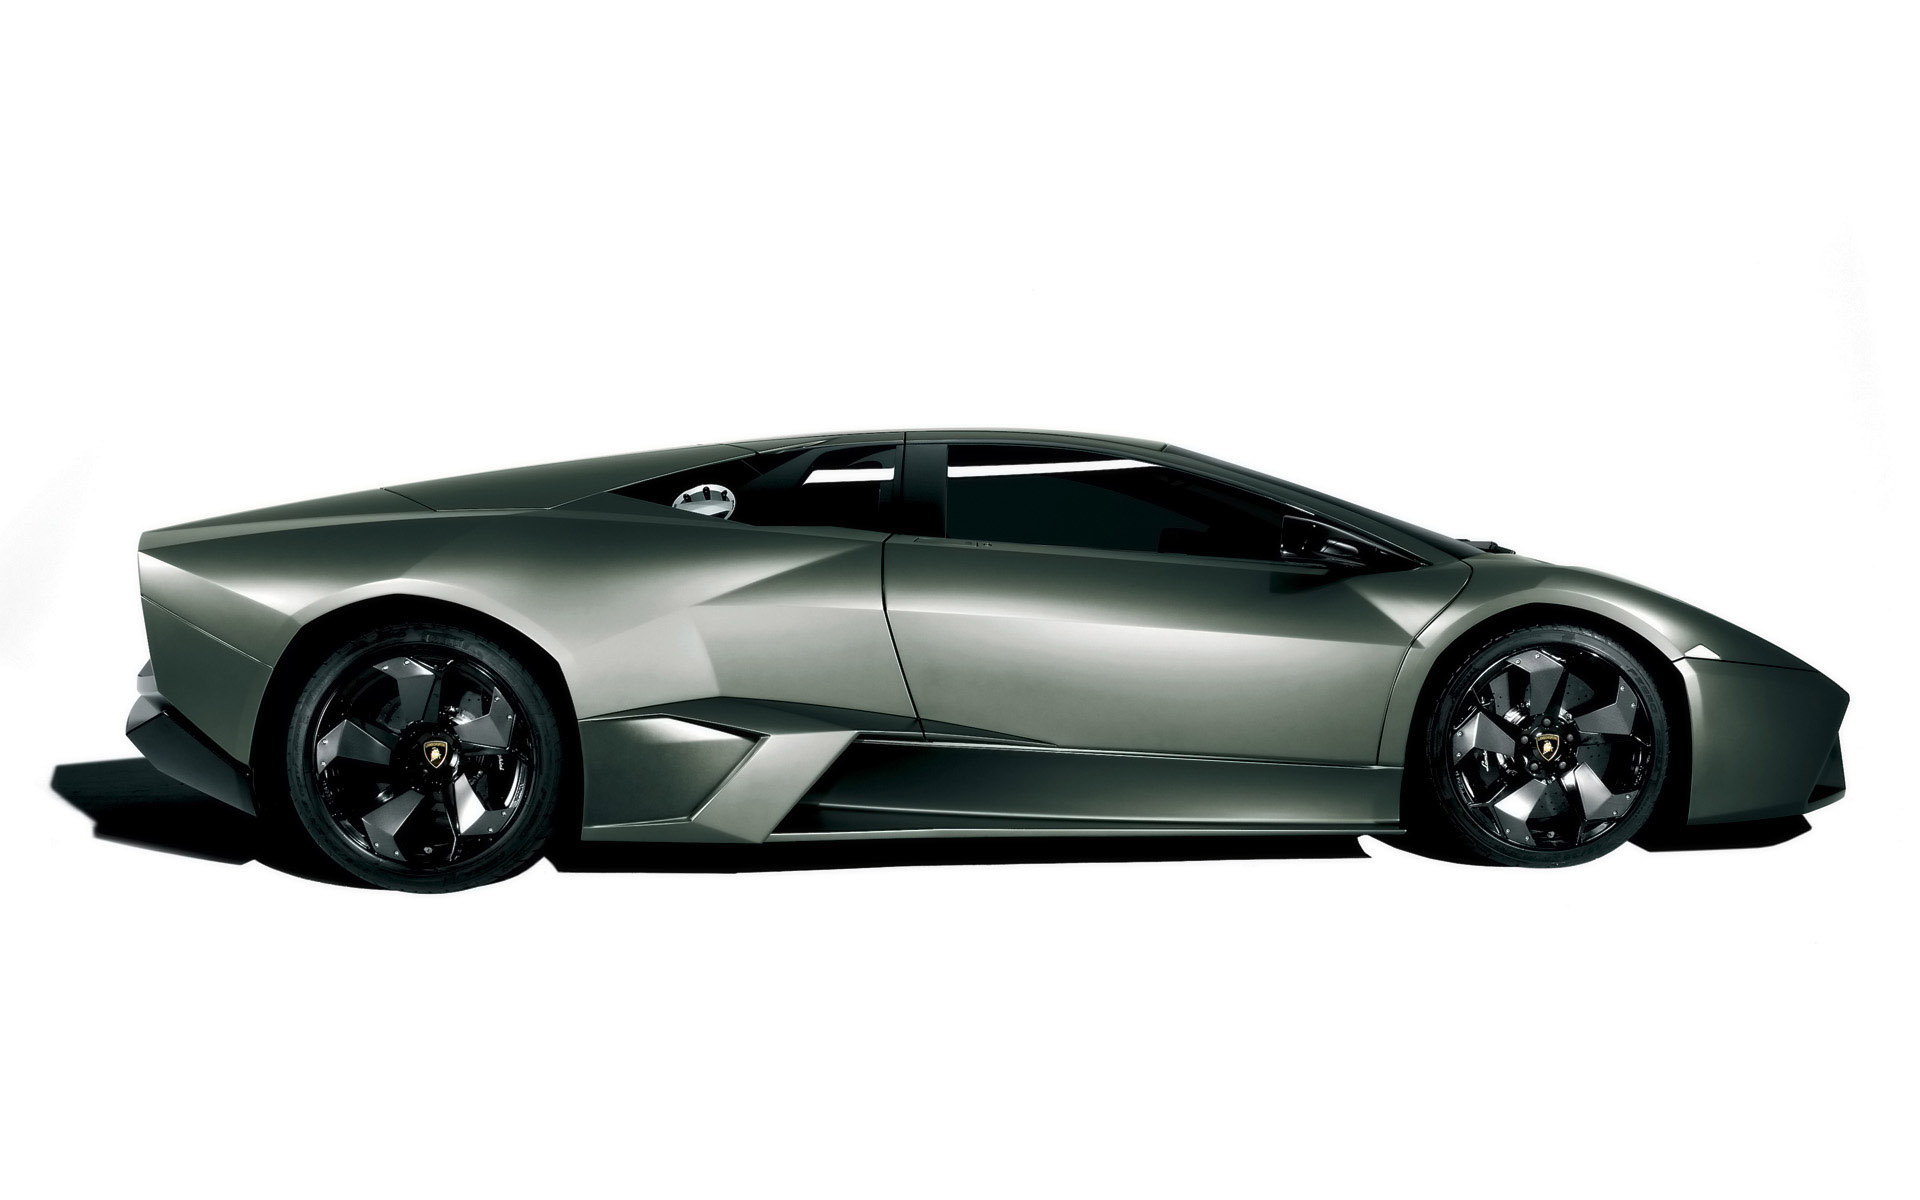 Reventon side view wallpapers reventon side view stock photos - Car side view wallpaper ...